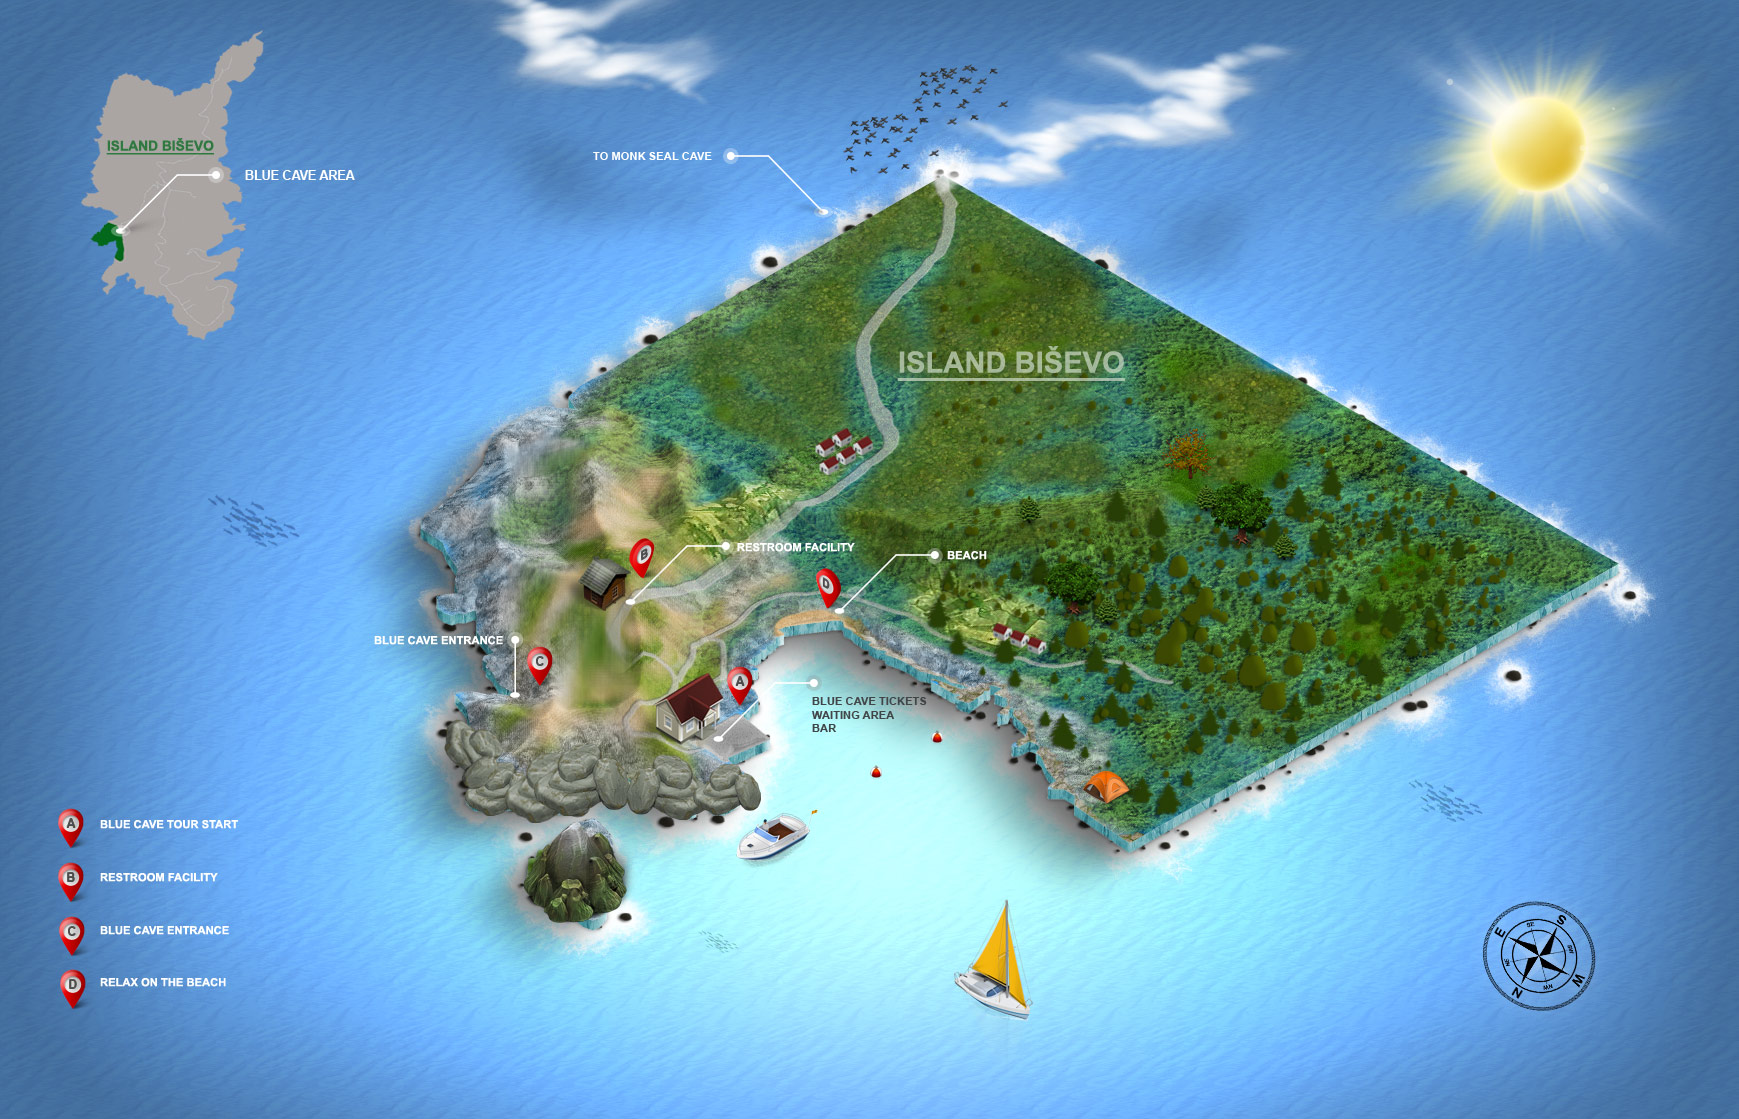 Blue cave Croatia infographic, ticket purchase, tour start, blue cave entrance, beach, restroom facilities